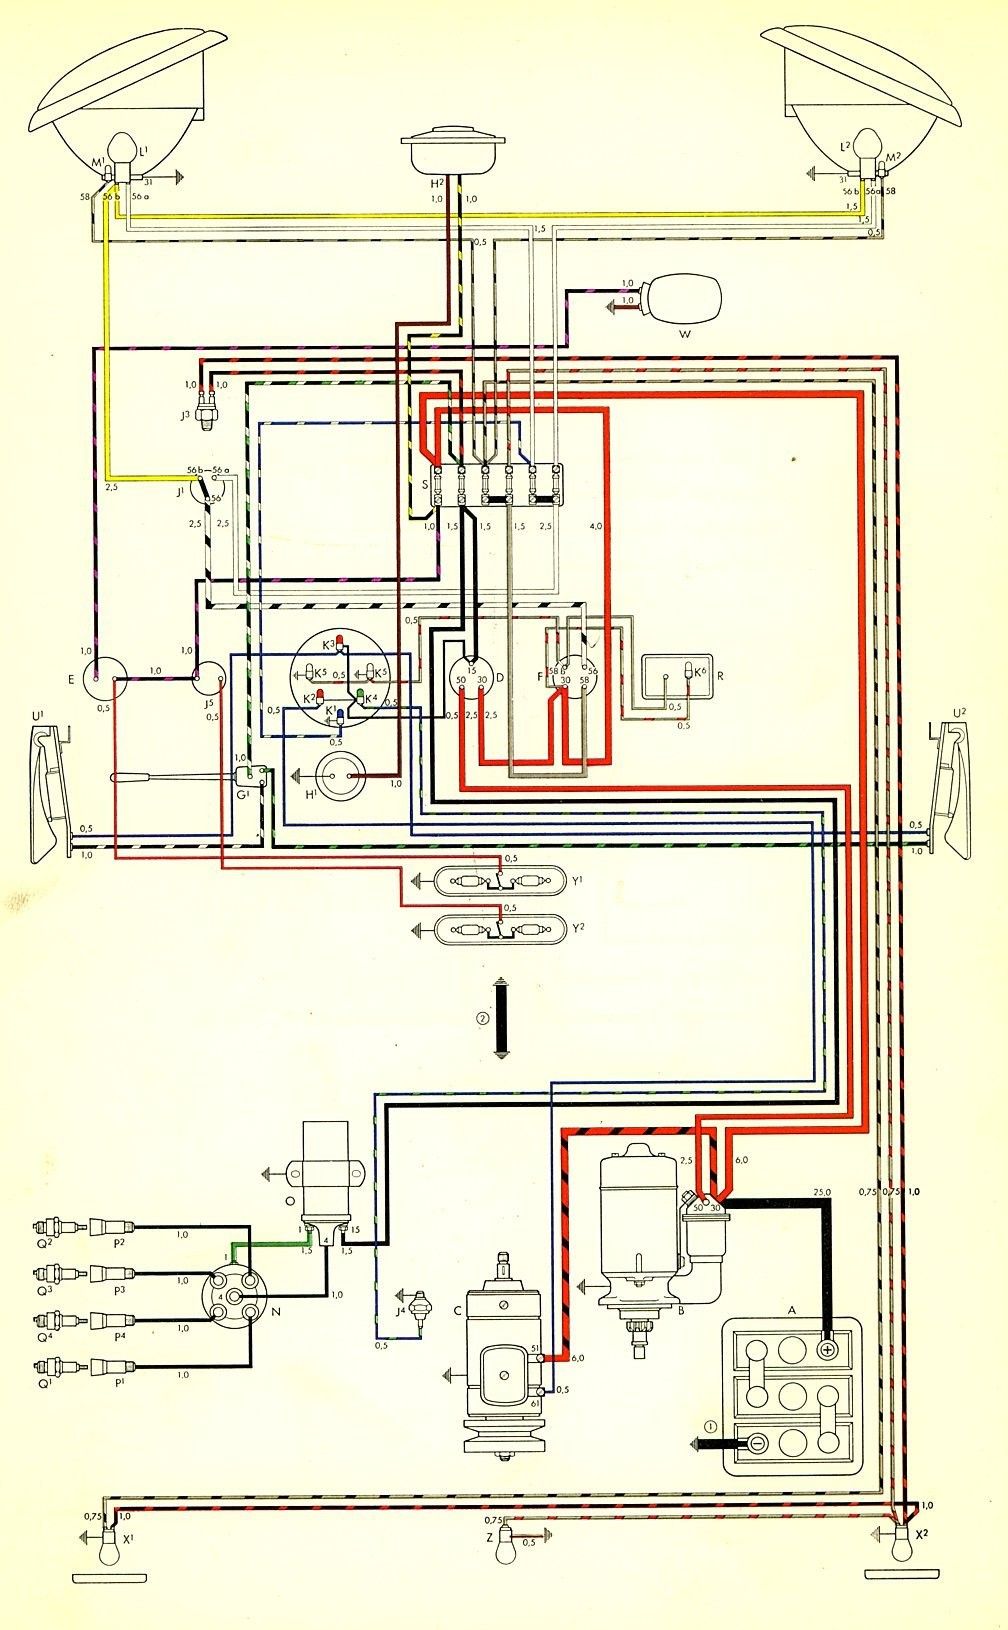 wrg 8096 trike wiring diagrams rh 64 123esigaret nl fourstar golf trike wiring diagram hd trike wiring diagram